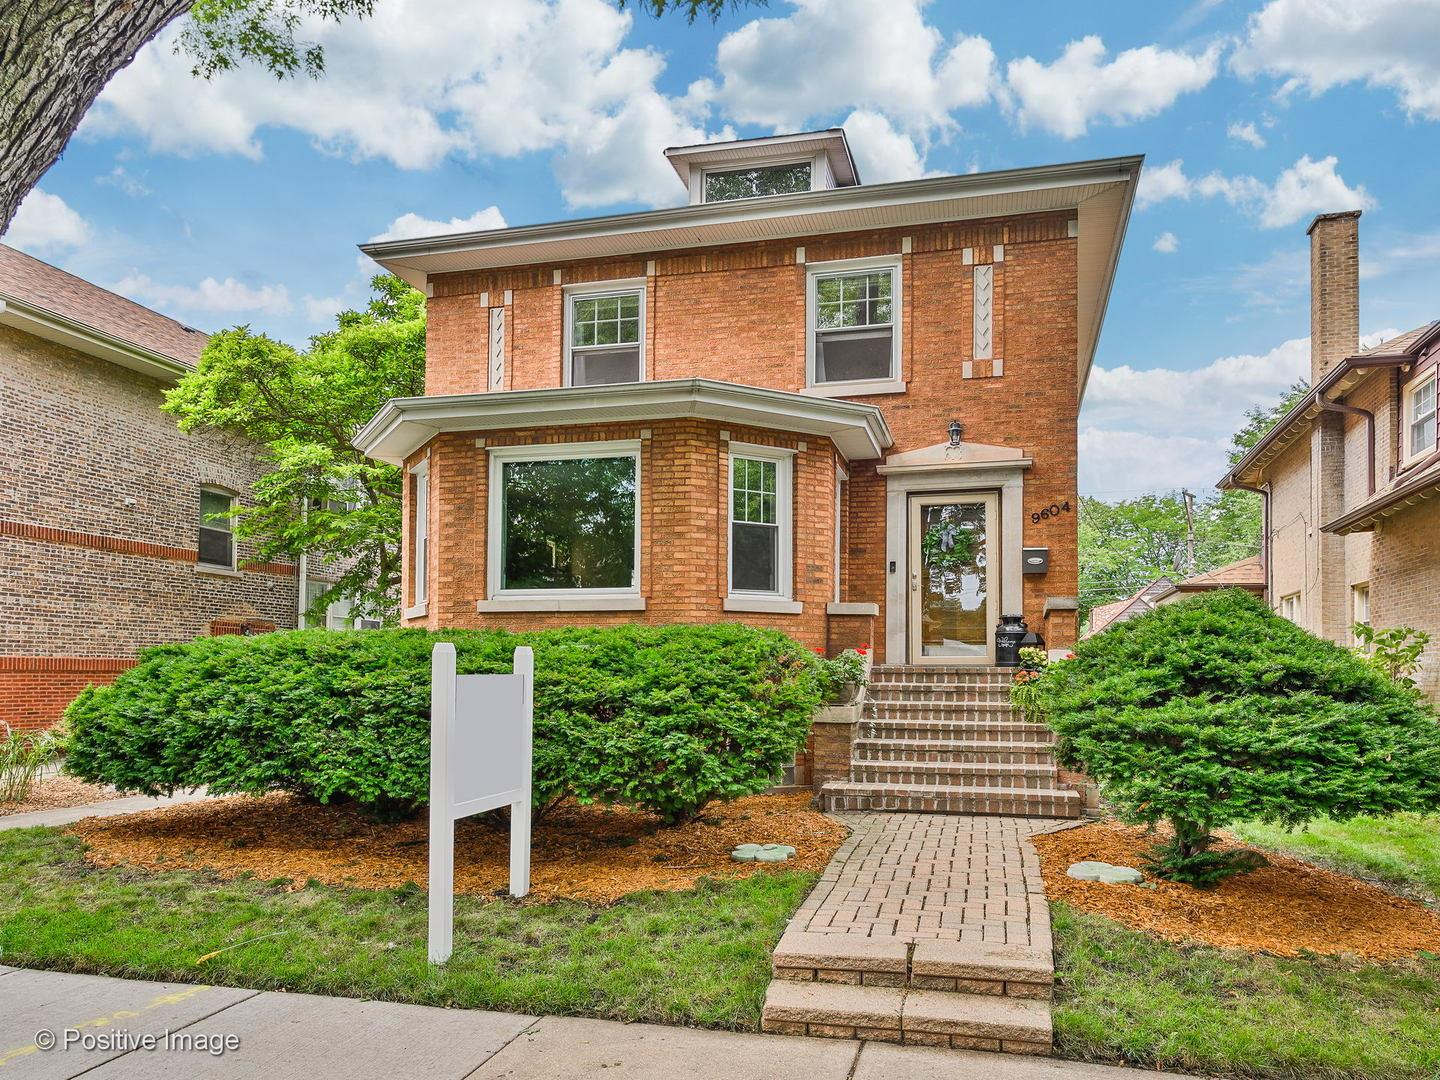 9604 S Hamilton Avenue, Chicago, IL 60643 - #: 10854658